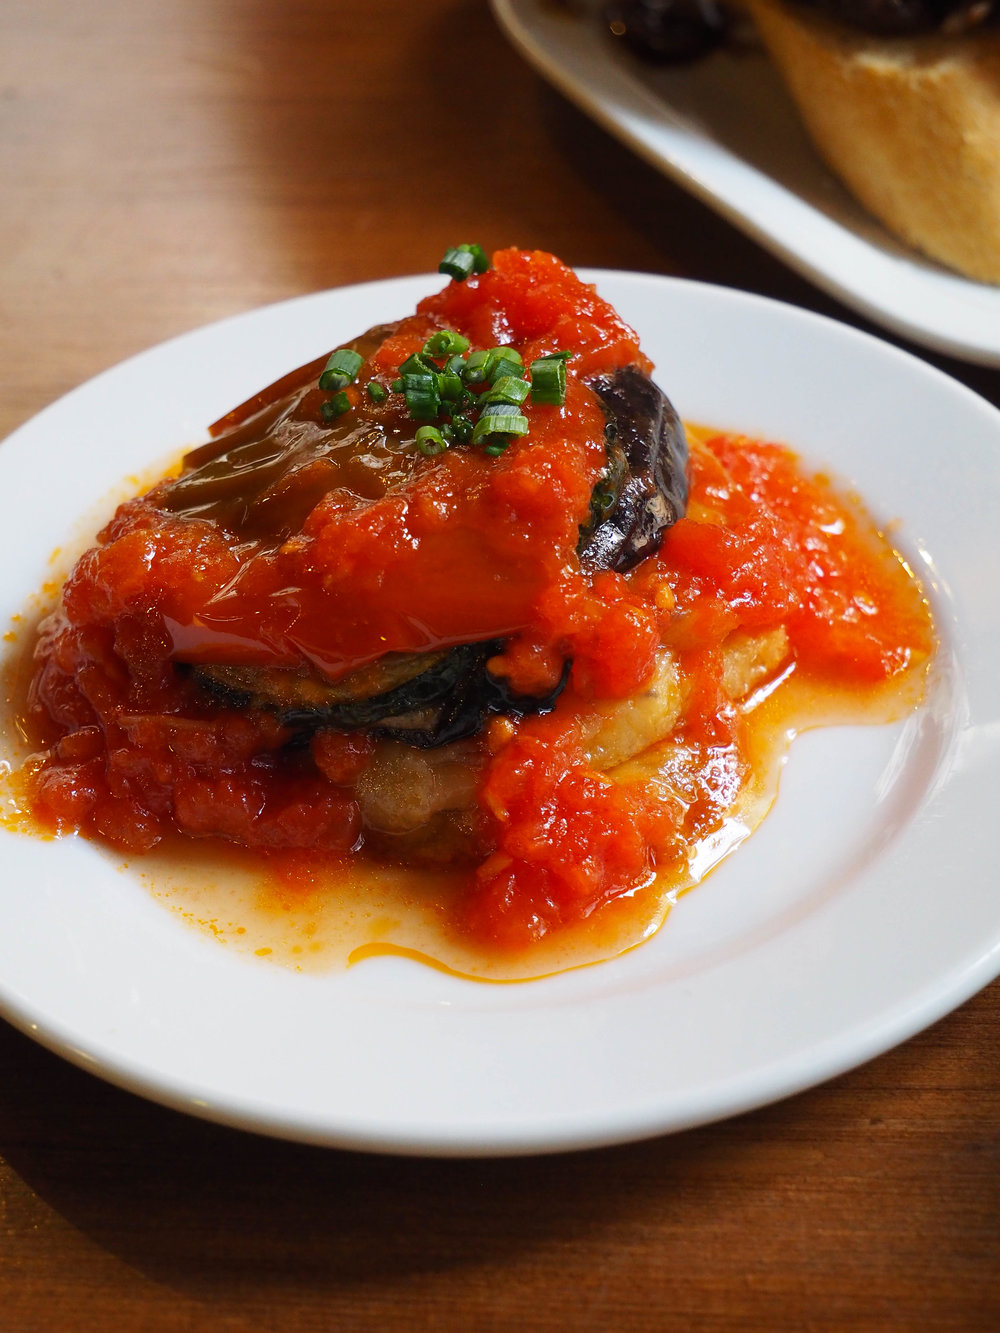 Toumbet, a traditional Mallorcan dish that's similar to ratatouille